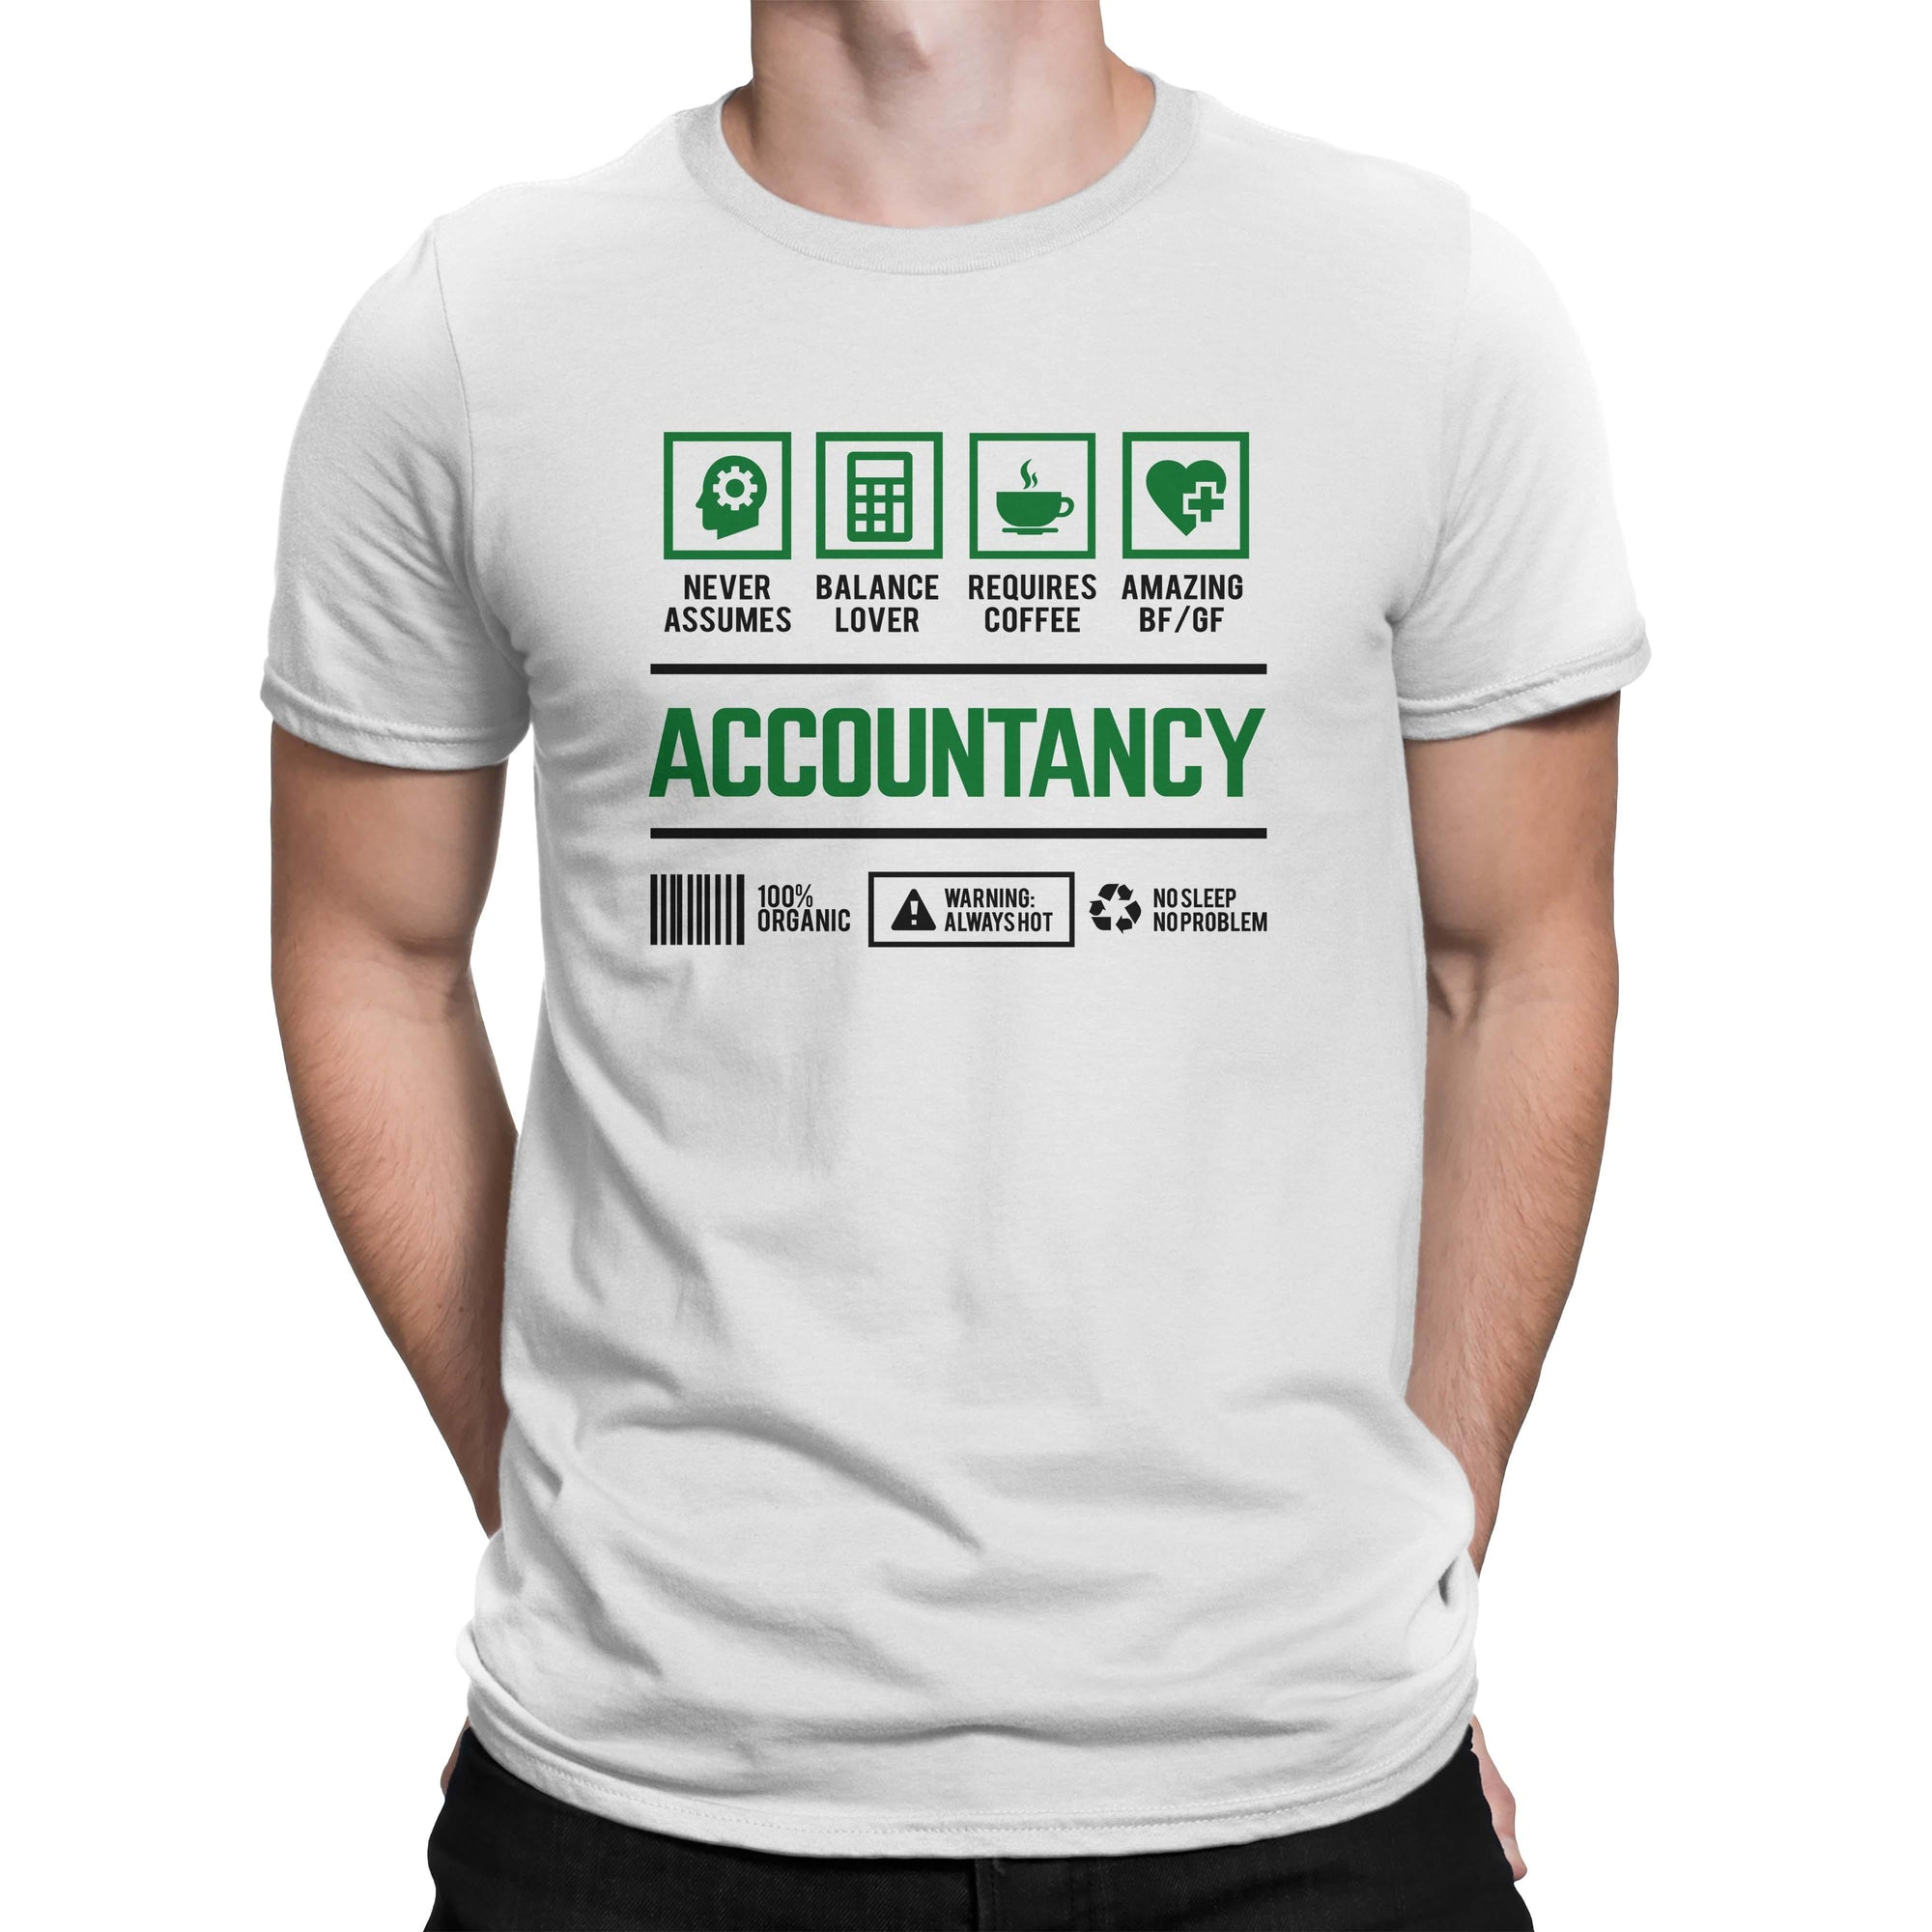 Course Shirt Accountancy Men Women's T-shirt on sale